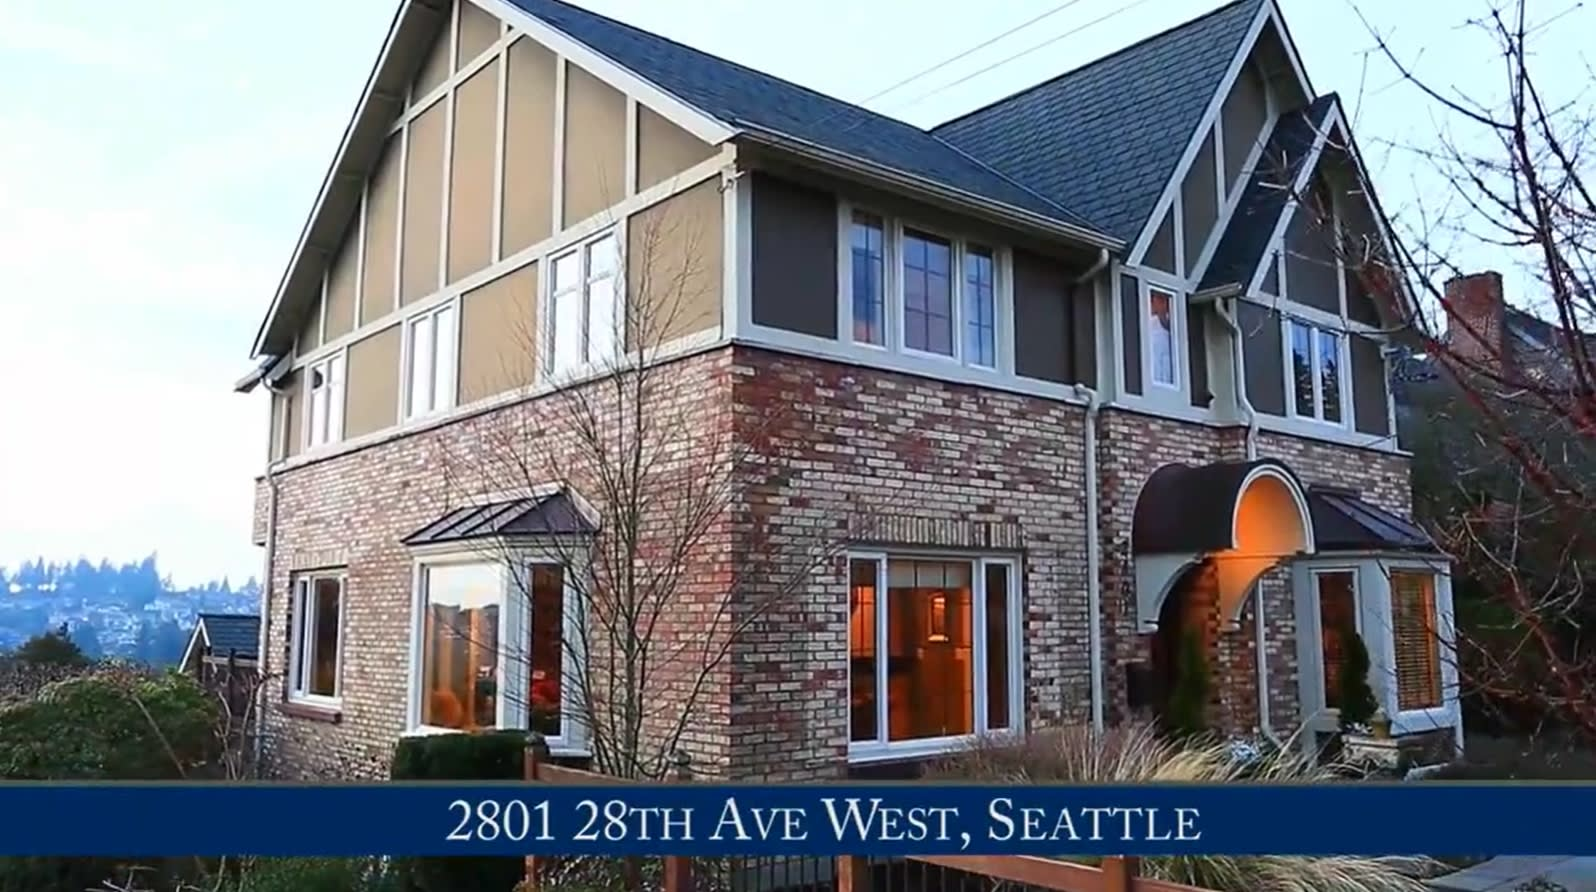 2801 28th Ave West, Seattle - Charming Magnolia video preview